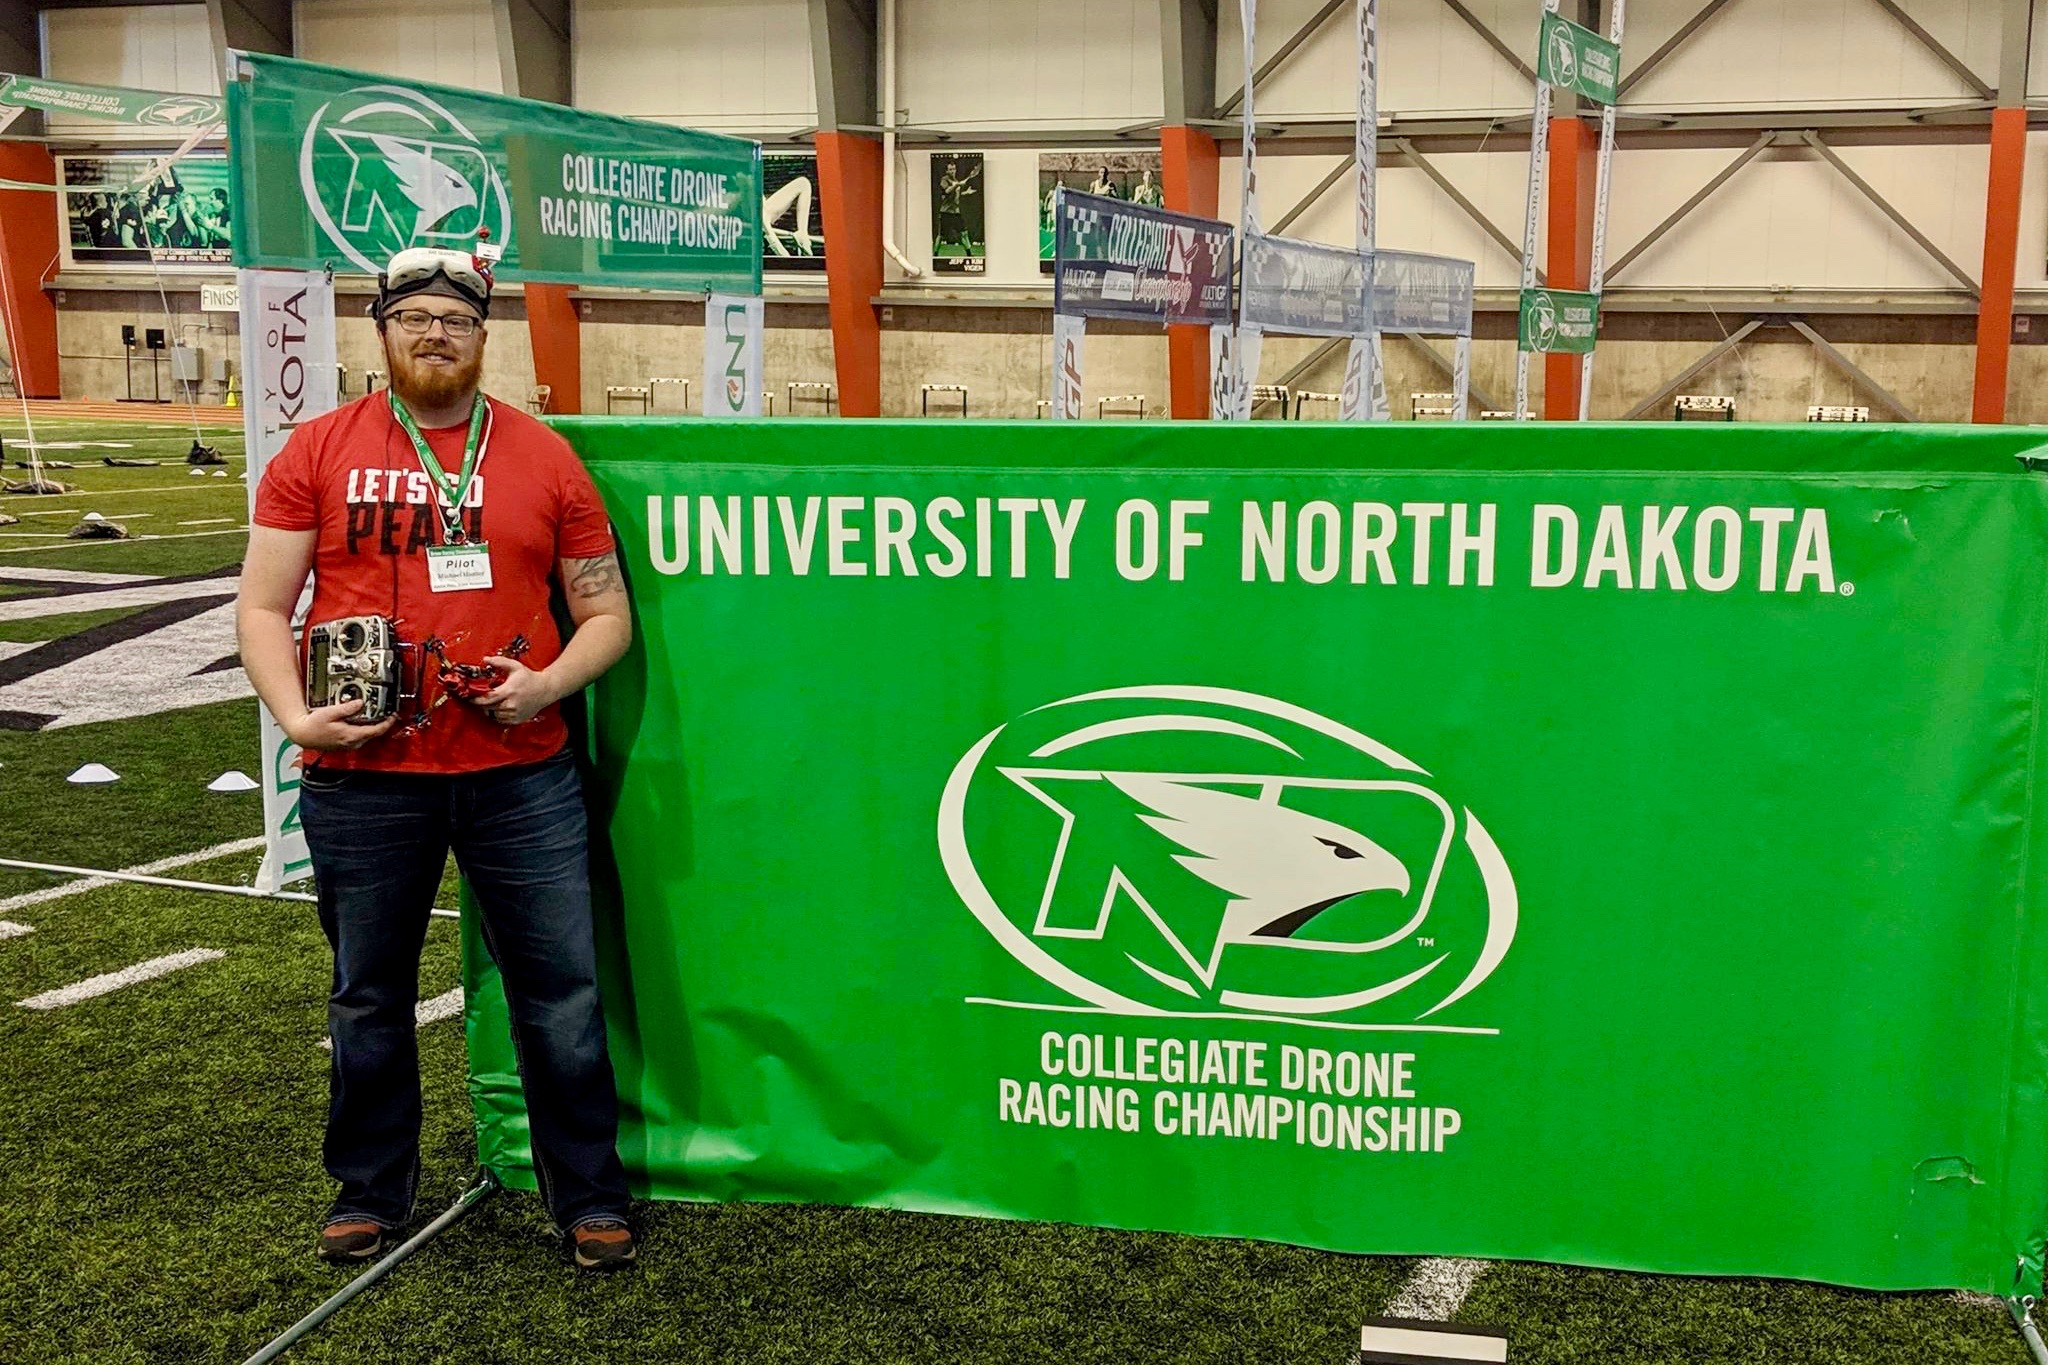 APSU's Hunter finishes 22nd overall at drone racing nationals